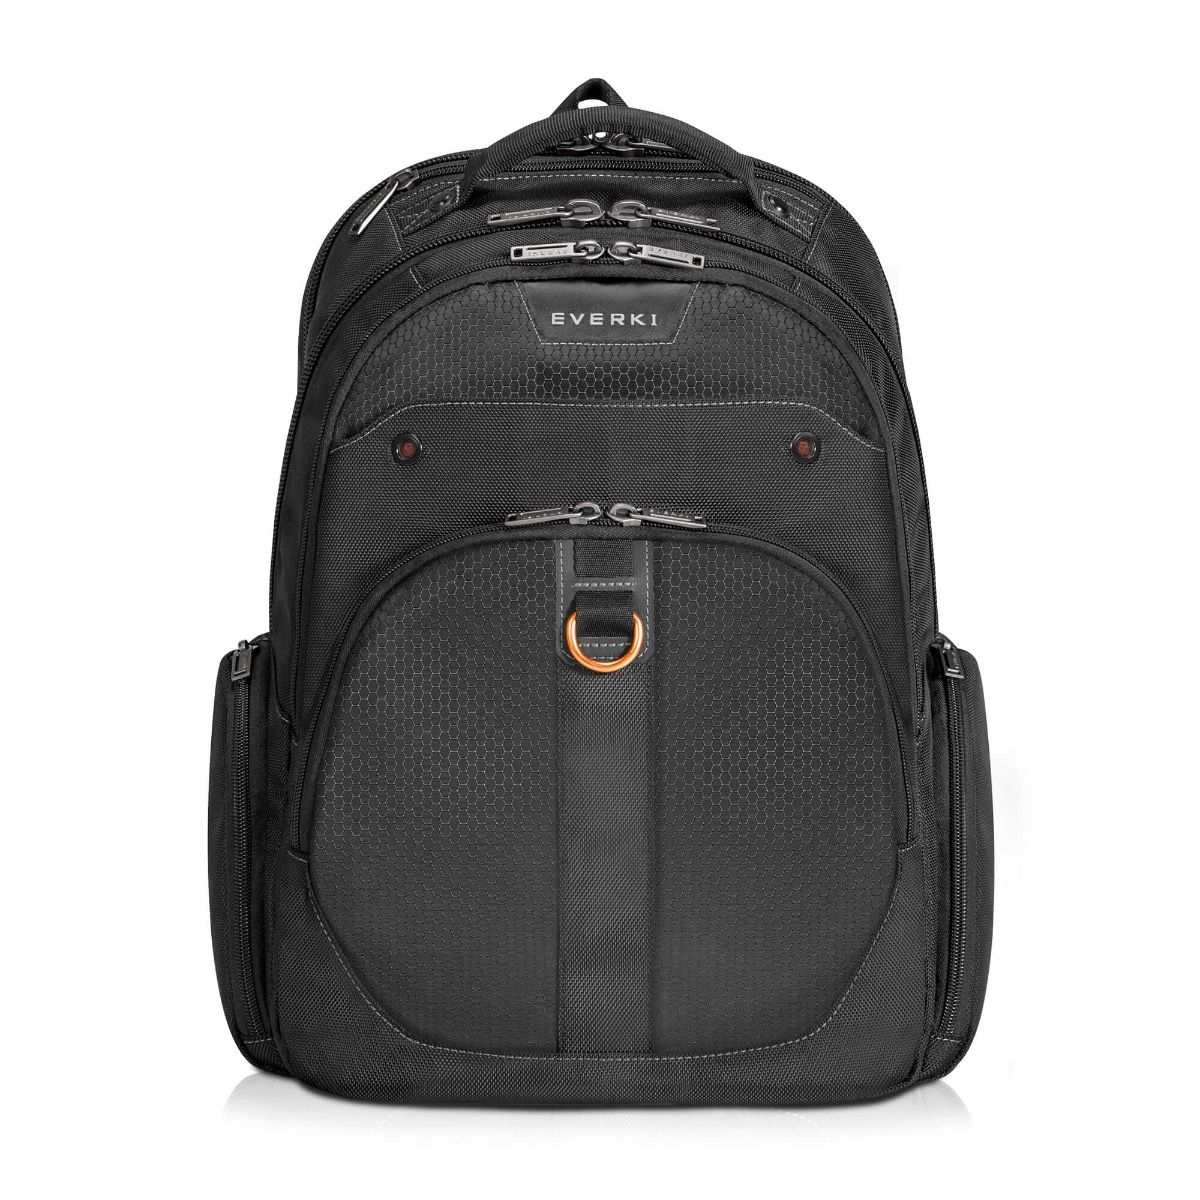 EVERKI Atlas 15 Inch Travel Friendly Laptop Backpack